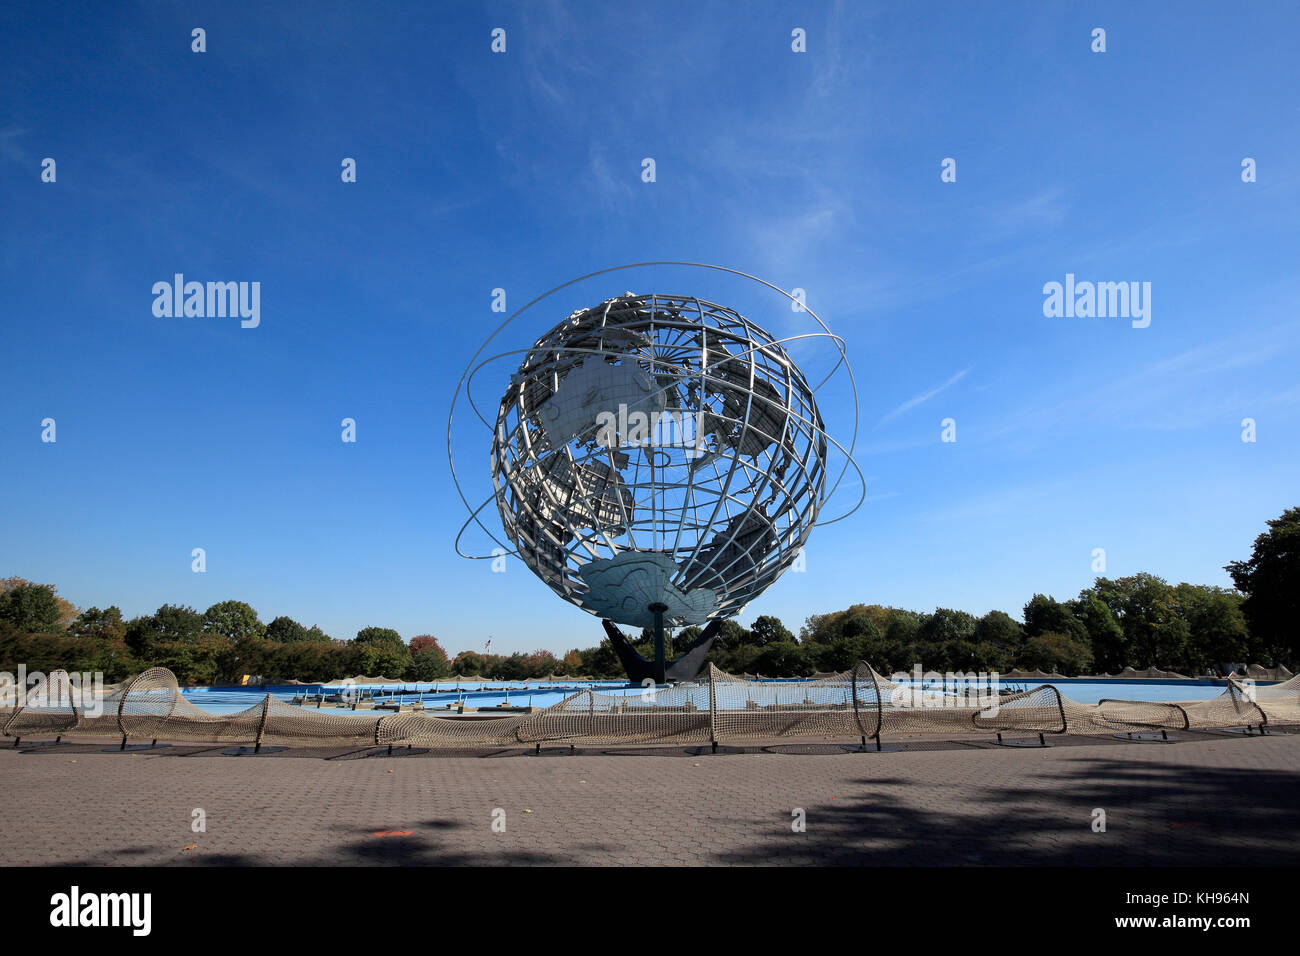 Ai Weiwei's Circle Fence at the Unisphere in Flushing Meadows Corona park, Queens, New York City - Stock Image